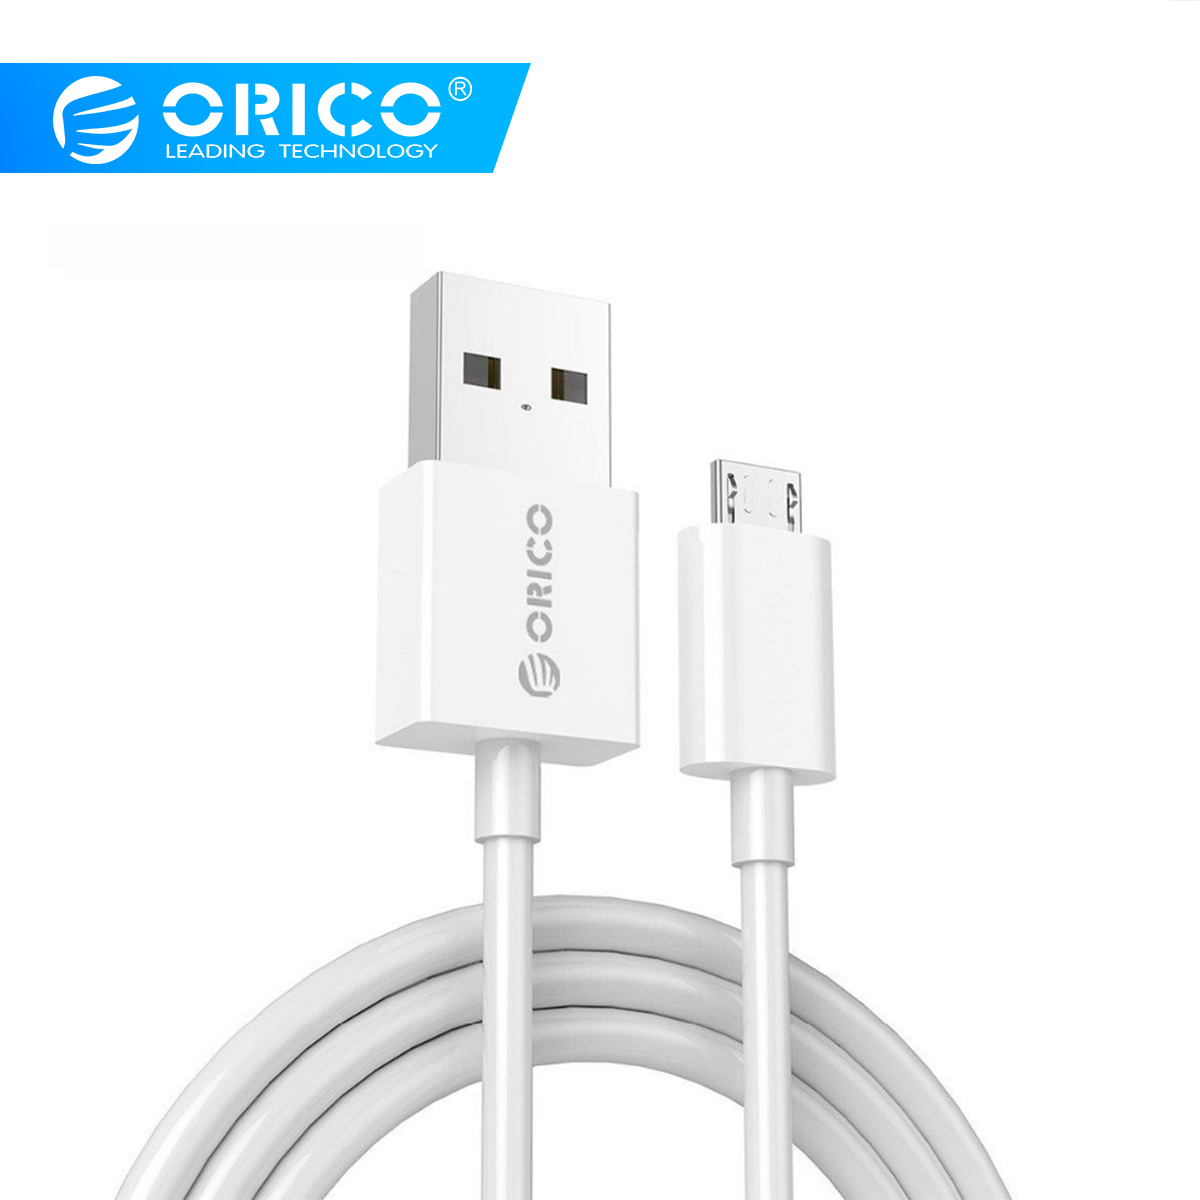 ORICO Micro USB2.0 Charging Data Cable for Samsung Galaxy Xiaomi HuaWei HTC LG and More